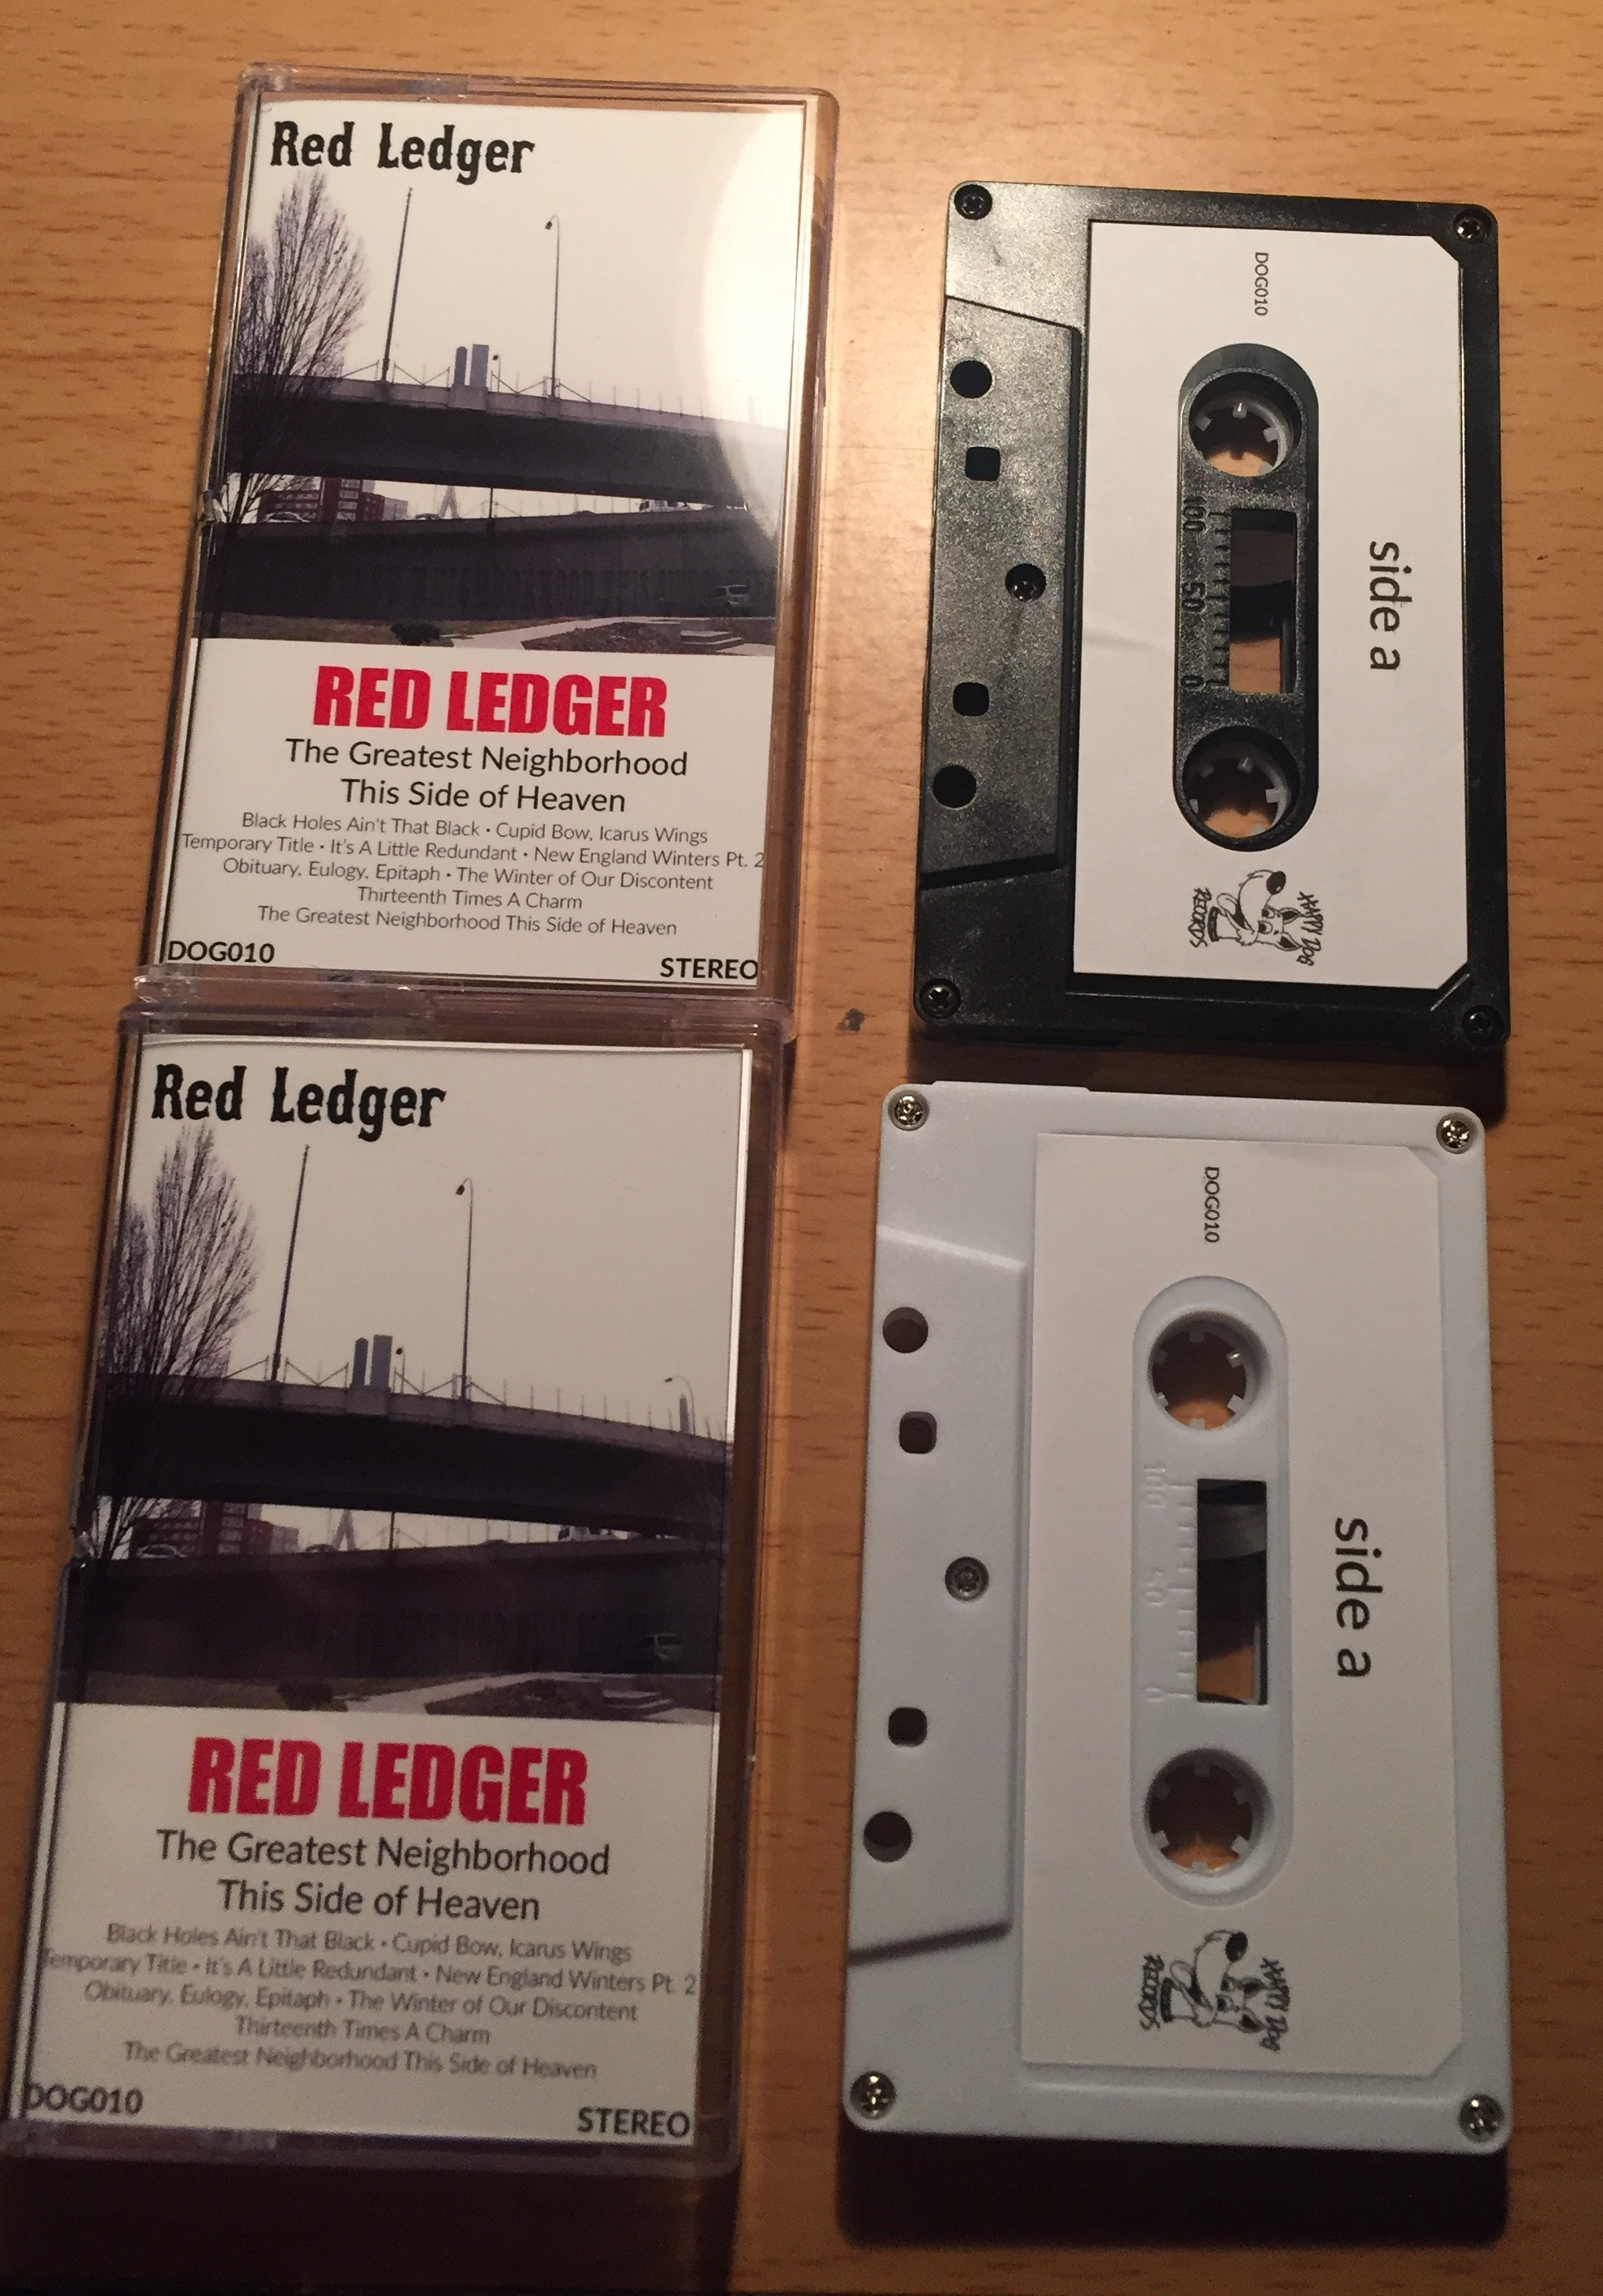 Red Ledger - The Greatest Neighborhood This Side of Heaven